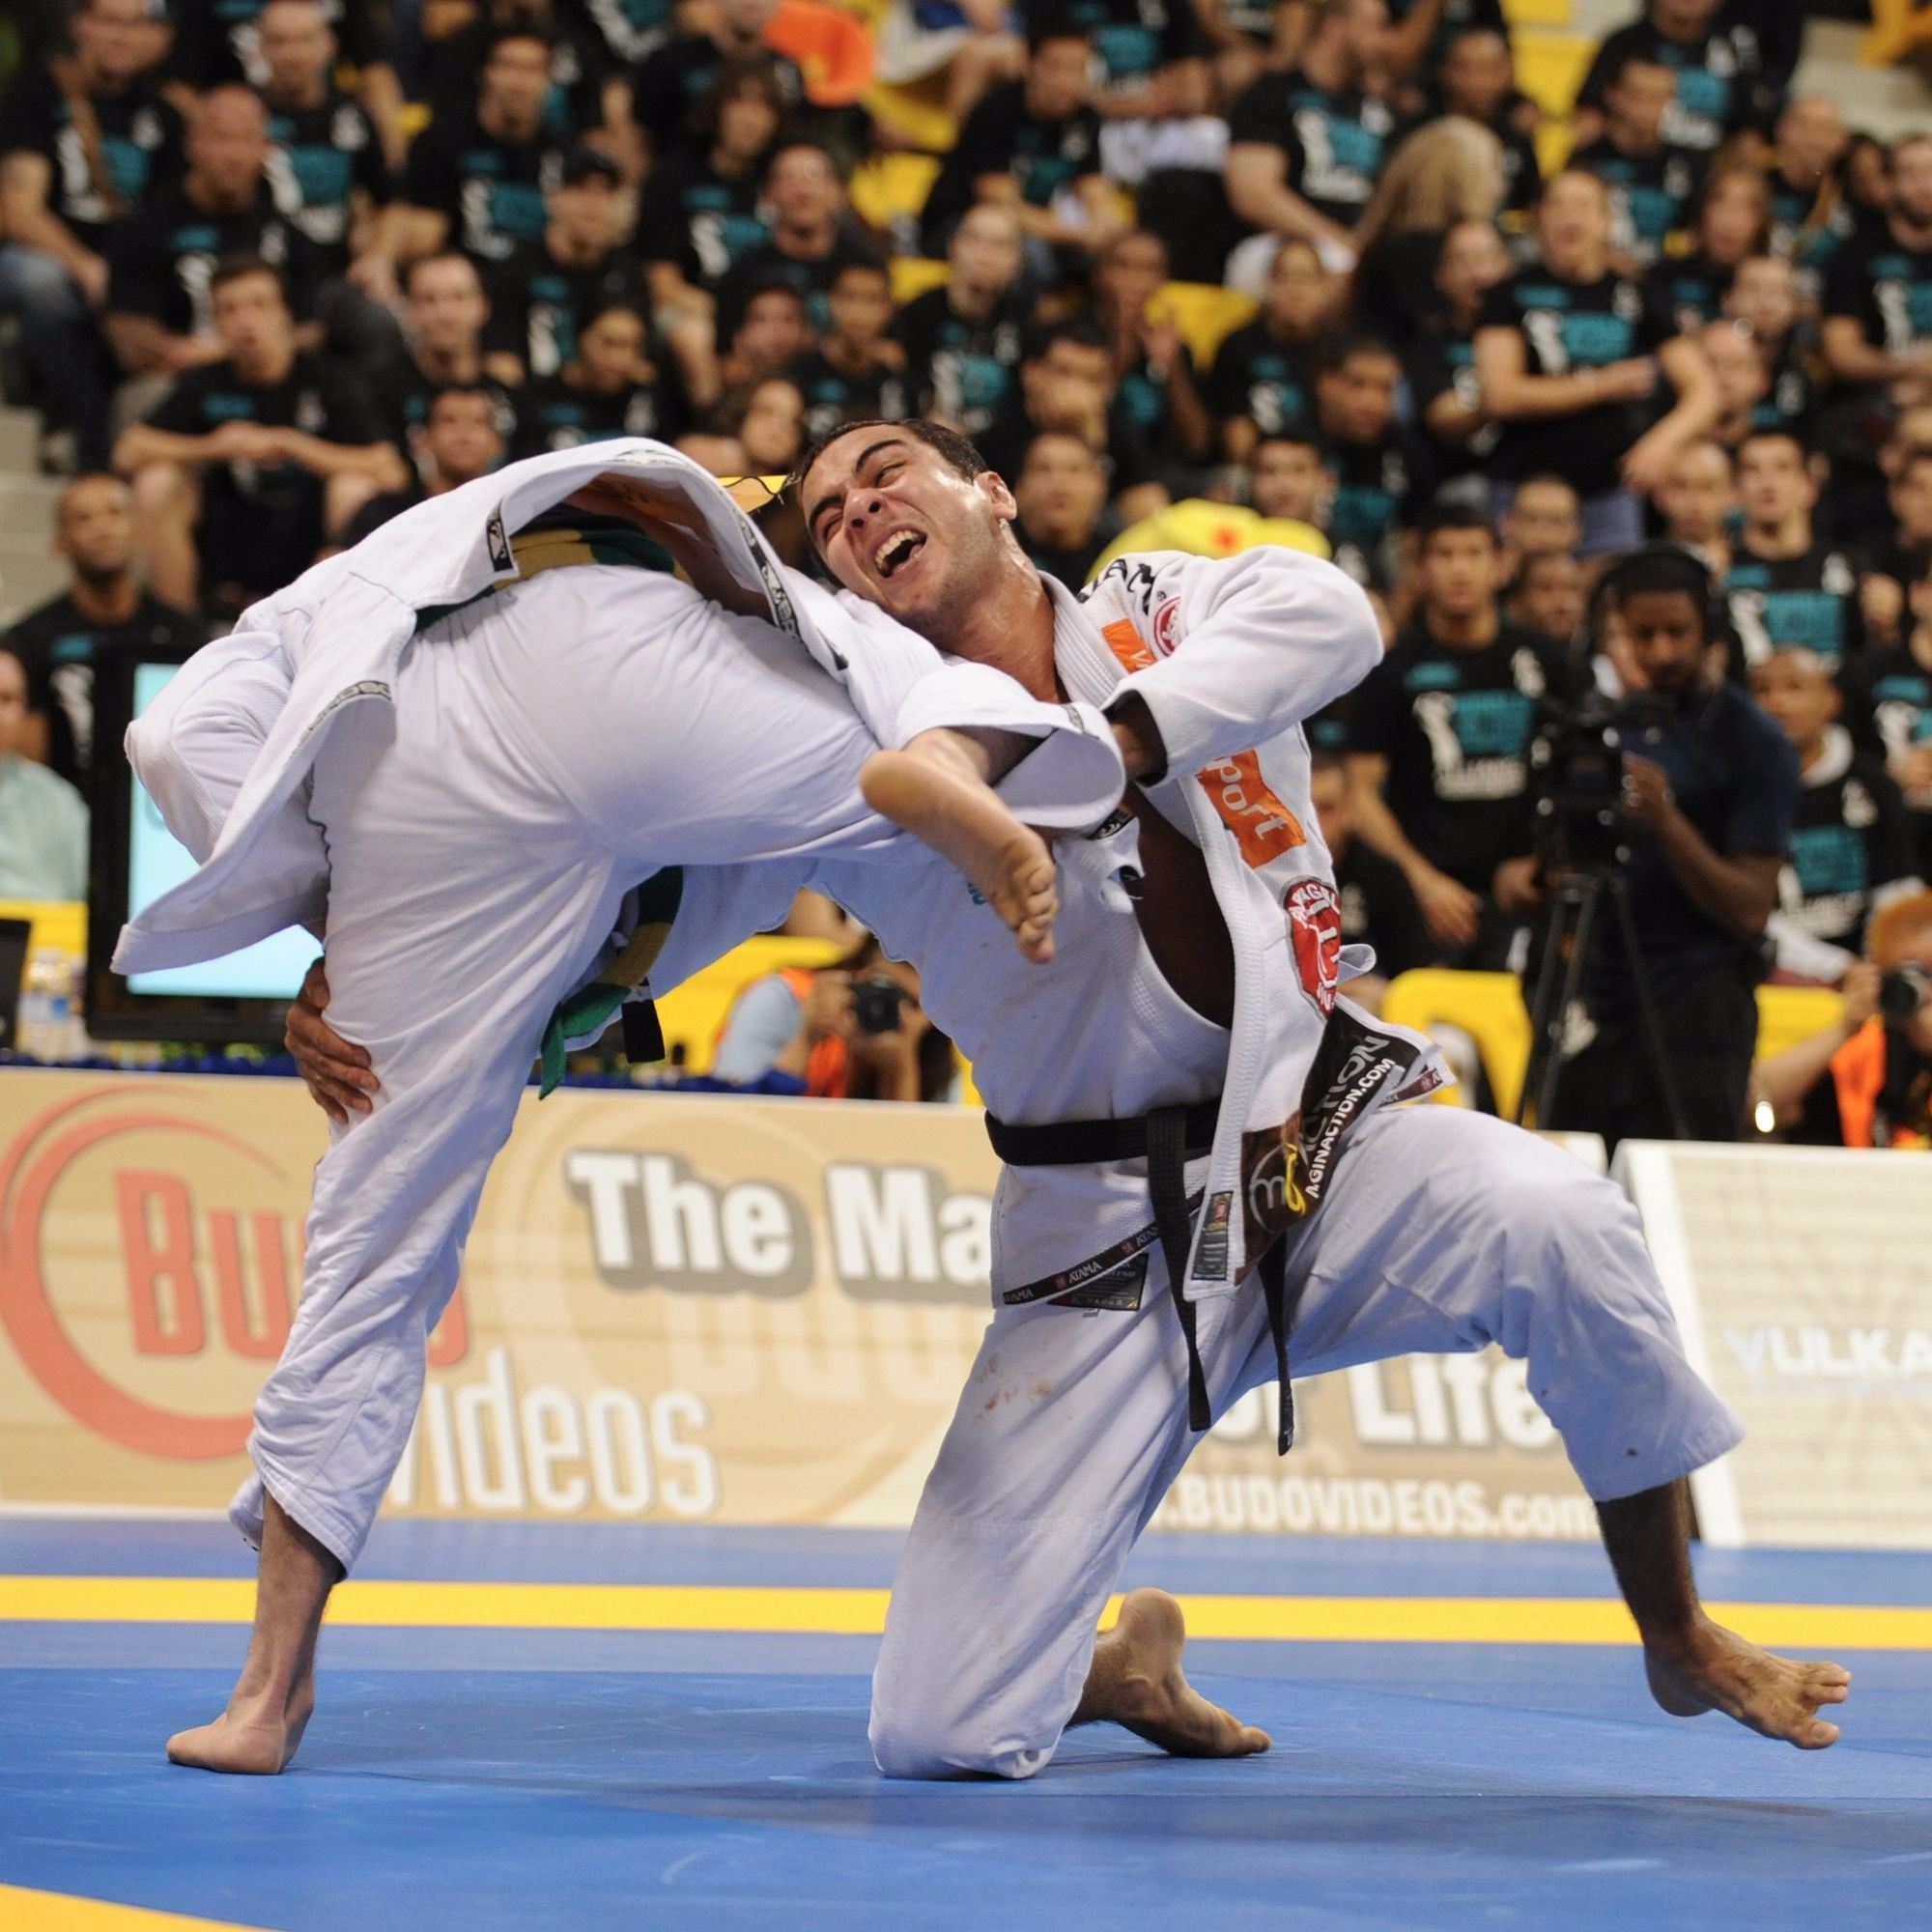 In 2015, Bernardo Faria joined an exclusive club of only 11 Brazilian Jiu-Jitsu athletes to have the World Jiu-Jitsu IBJJF Championship title in the black belt, open weight division. Add to it three more golds in his weight division. In this scene, Bernardo sweeps to conquer his first world championship, in 2010.